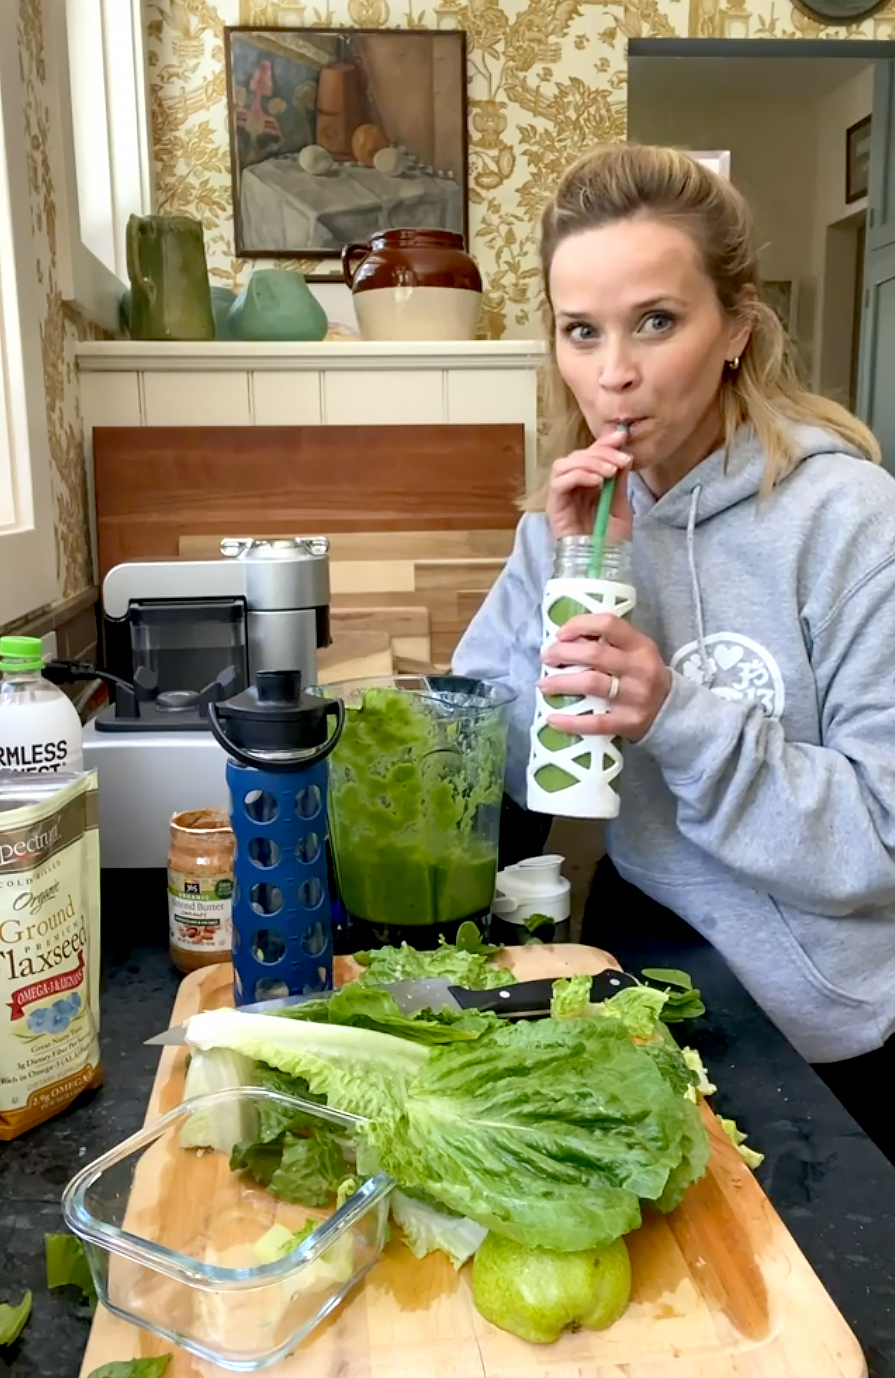 Reese Witherspoon Shares Recipe for the Smoothie She Drinks Everyday